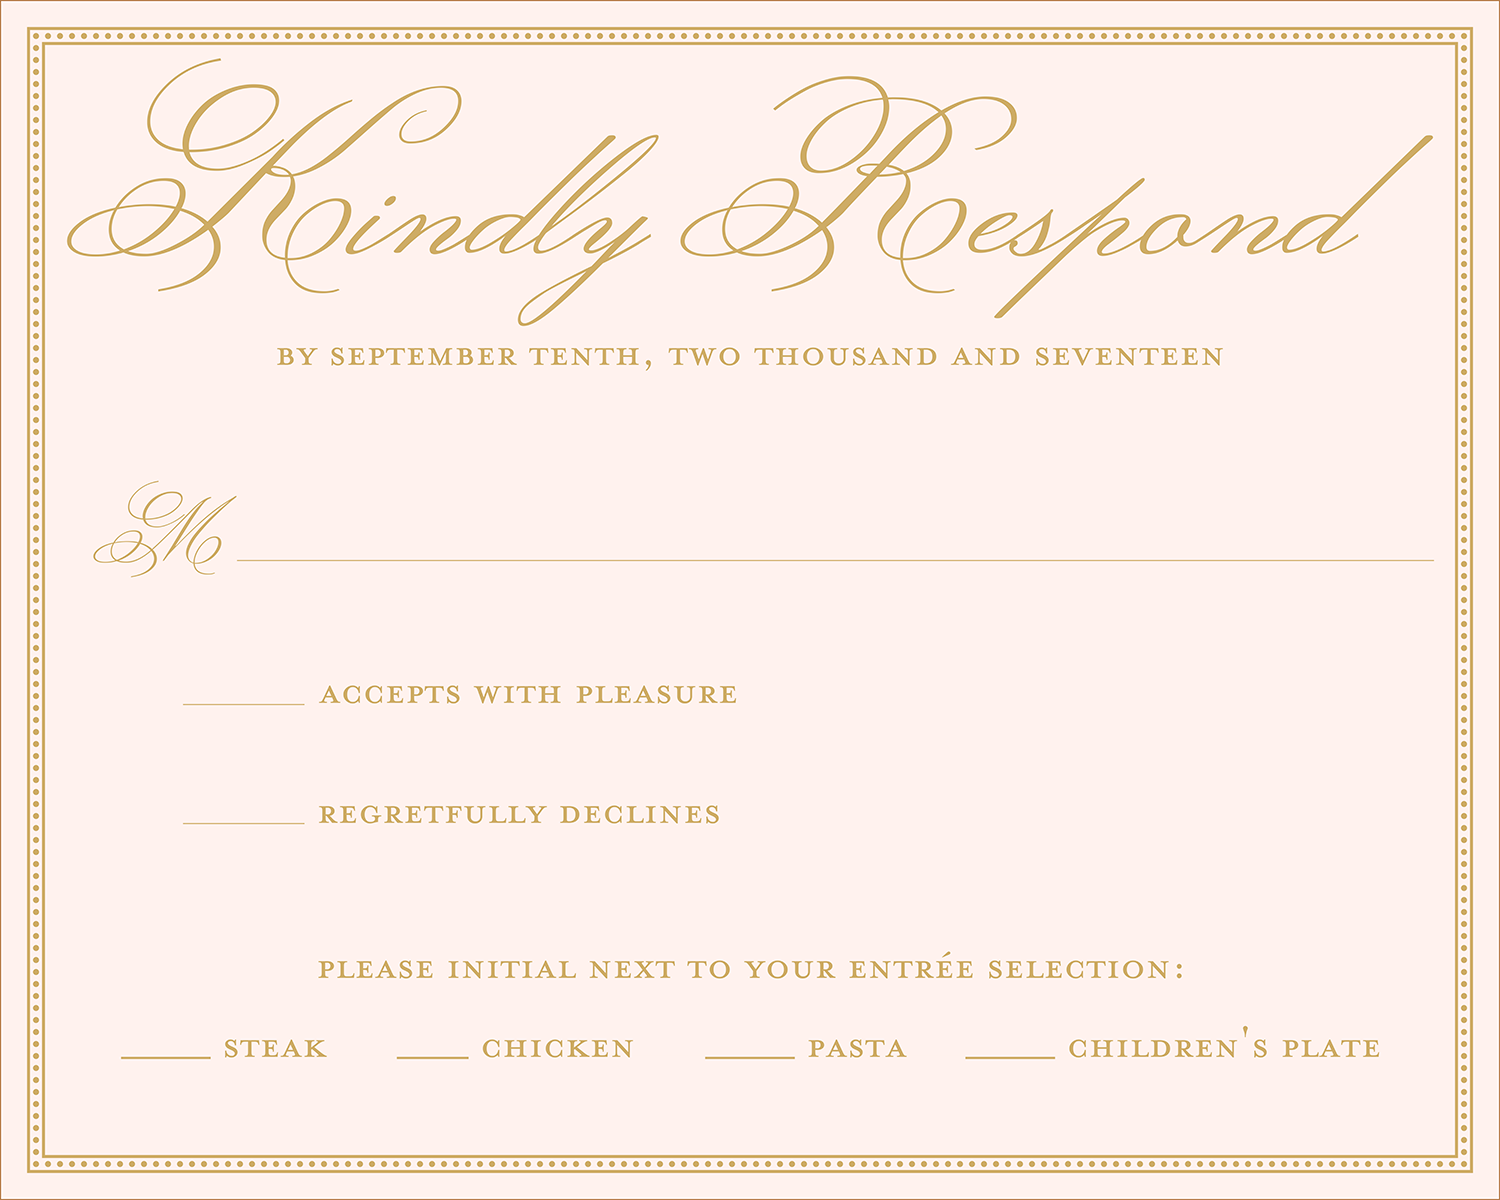 What Needs To Be Included In A Wedding Invitation: Wedding RSVP Wording Ideas